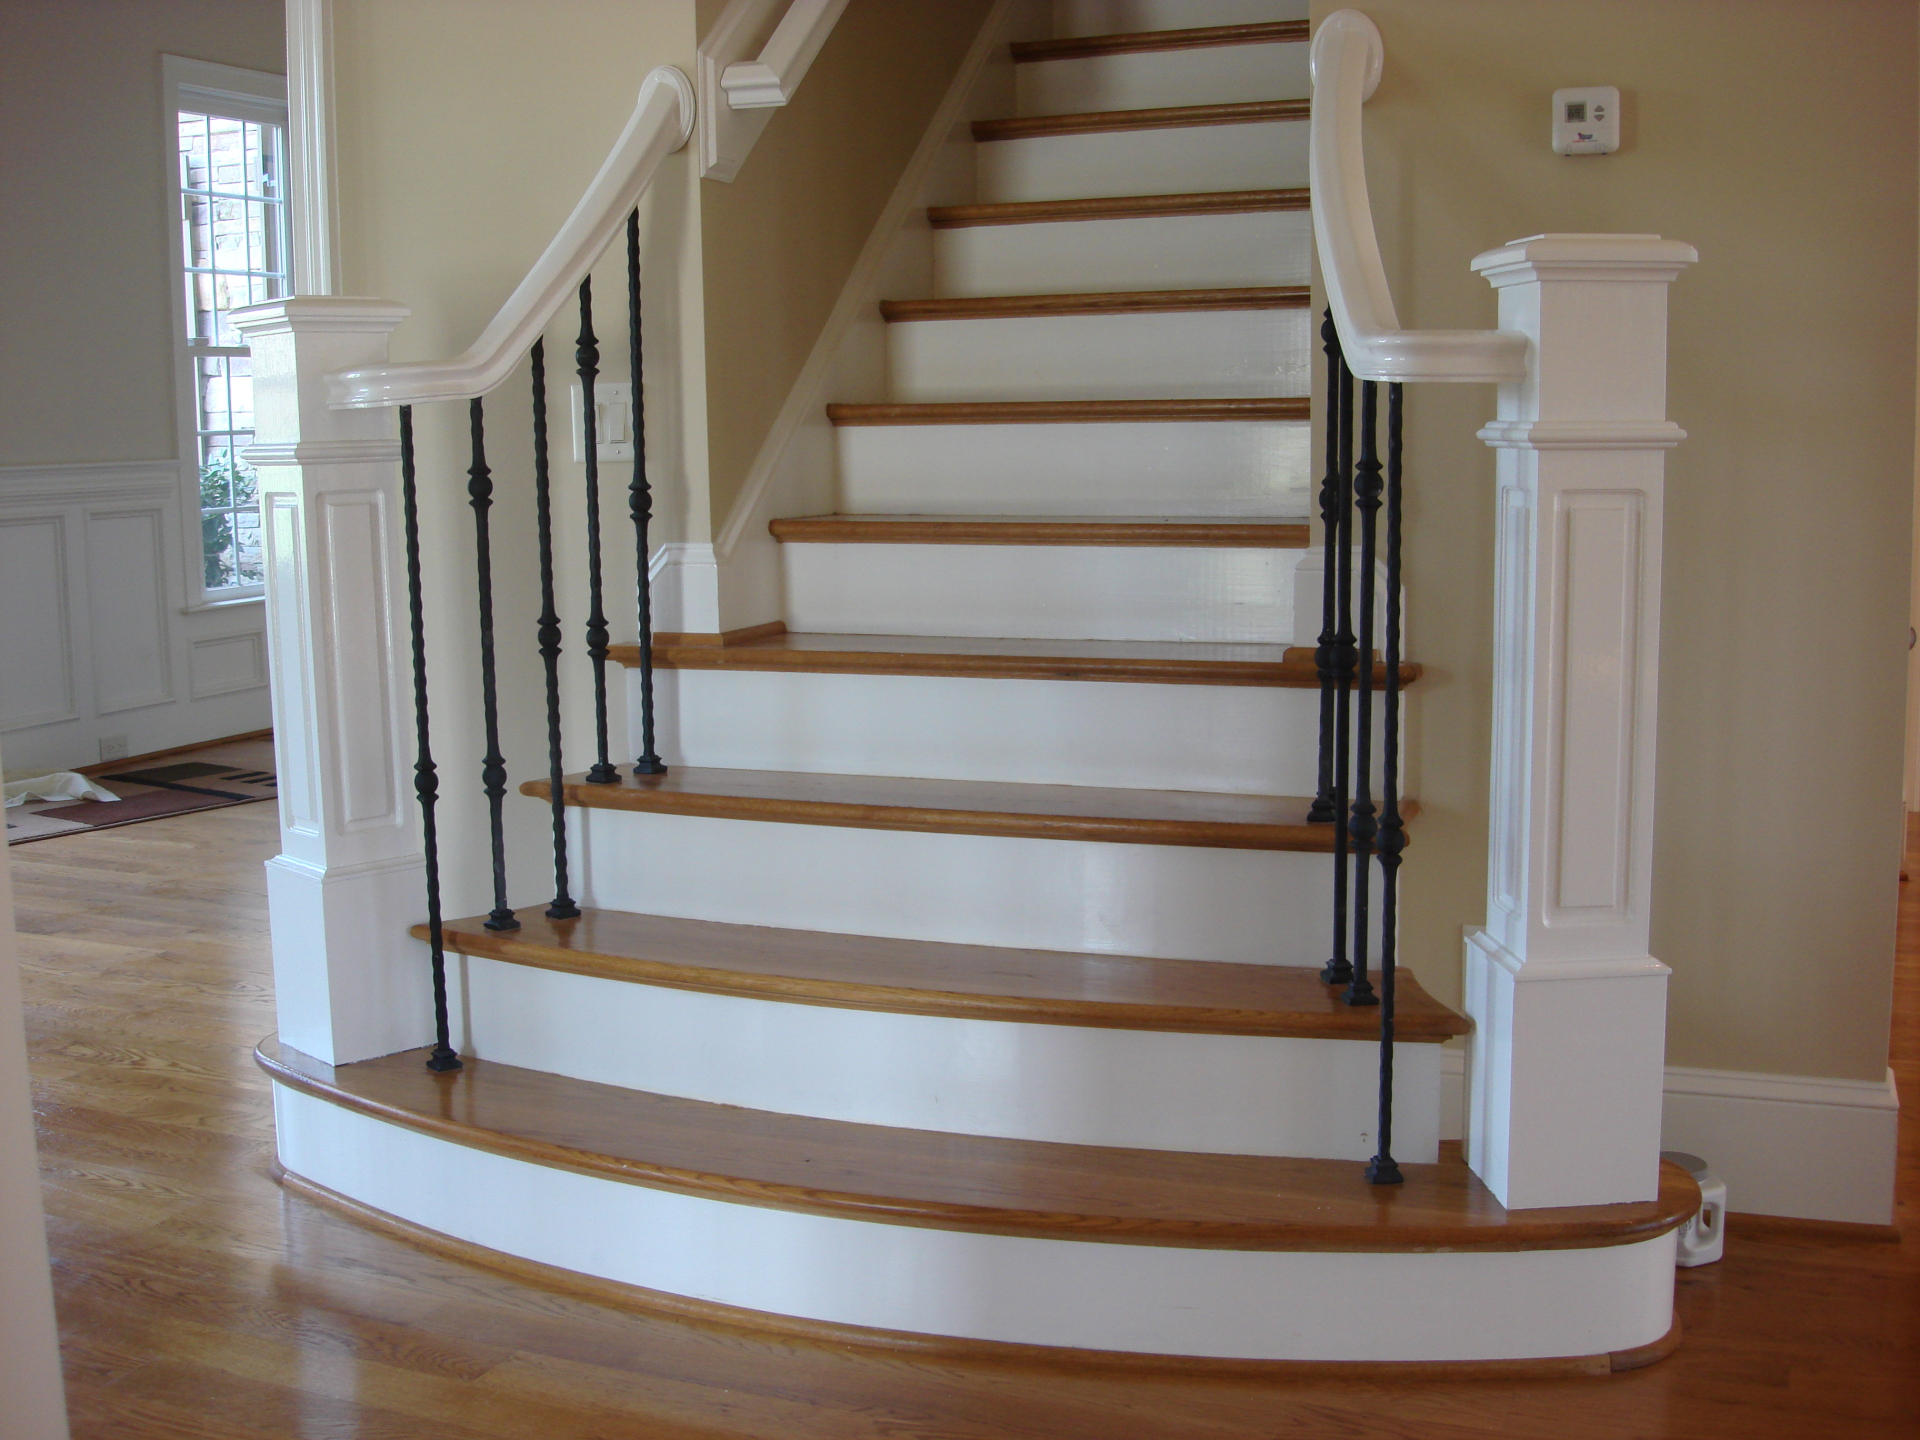 painted white paint stair rails and post, fabulous finishes by michelle, bedford